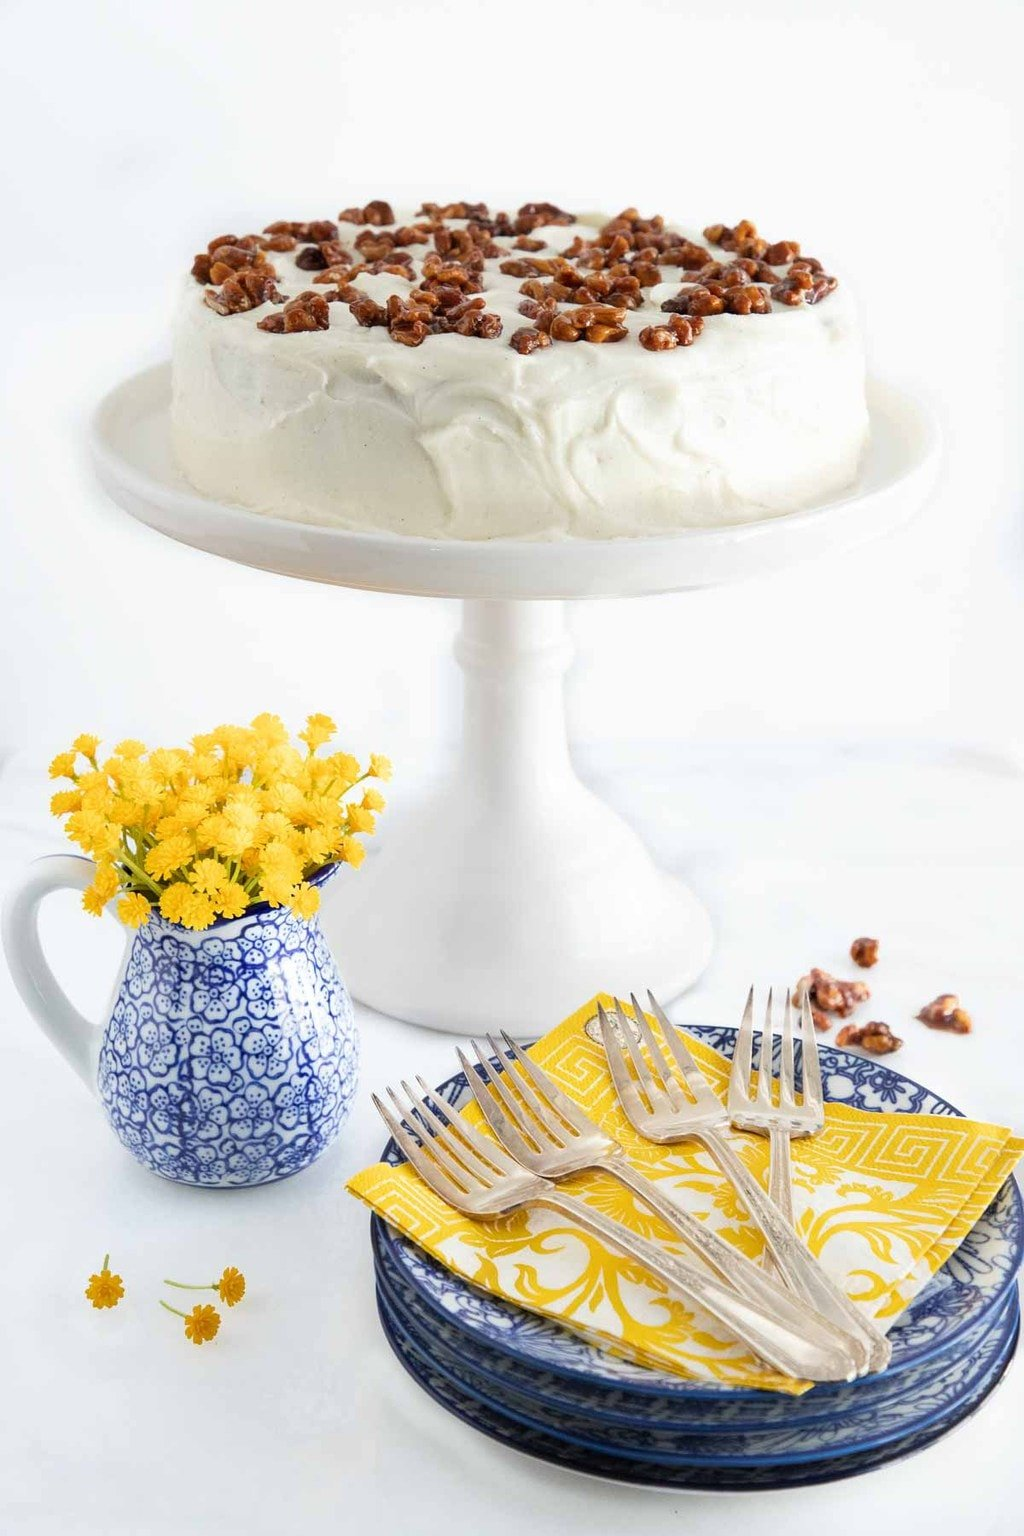 Photo of a One-Bowl No-Mixer Banana Cake on a white pedestal cake stand with serving utensils and dishes in the foreground.